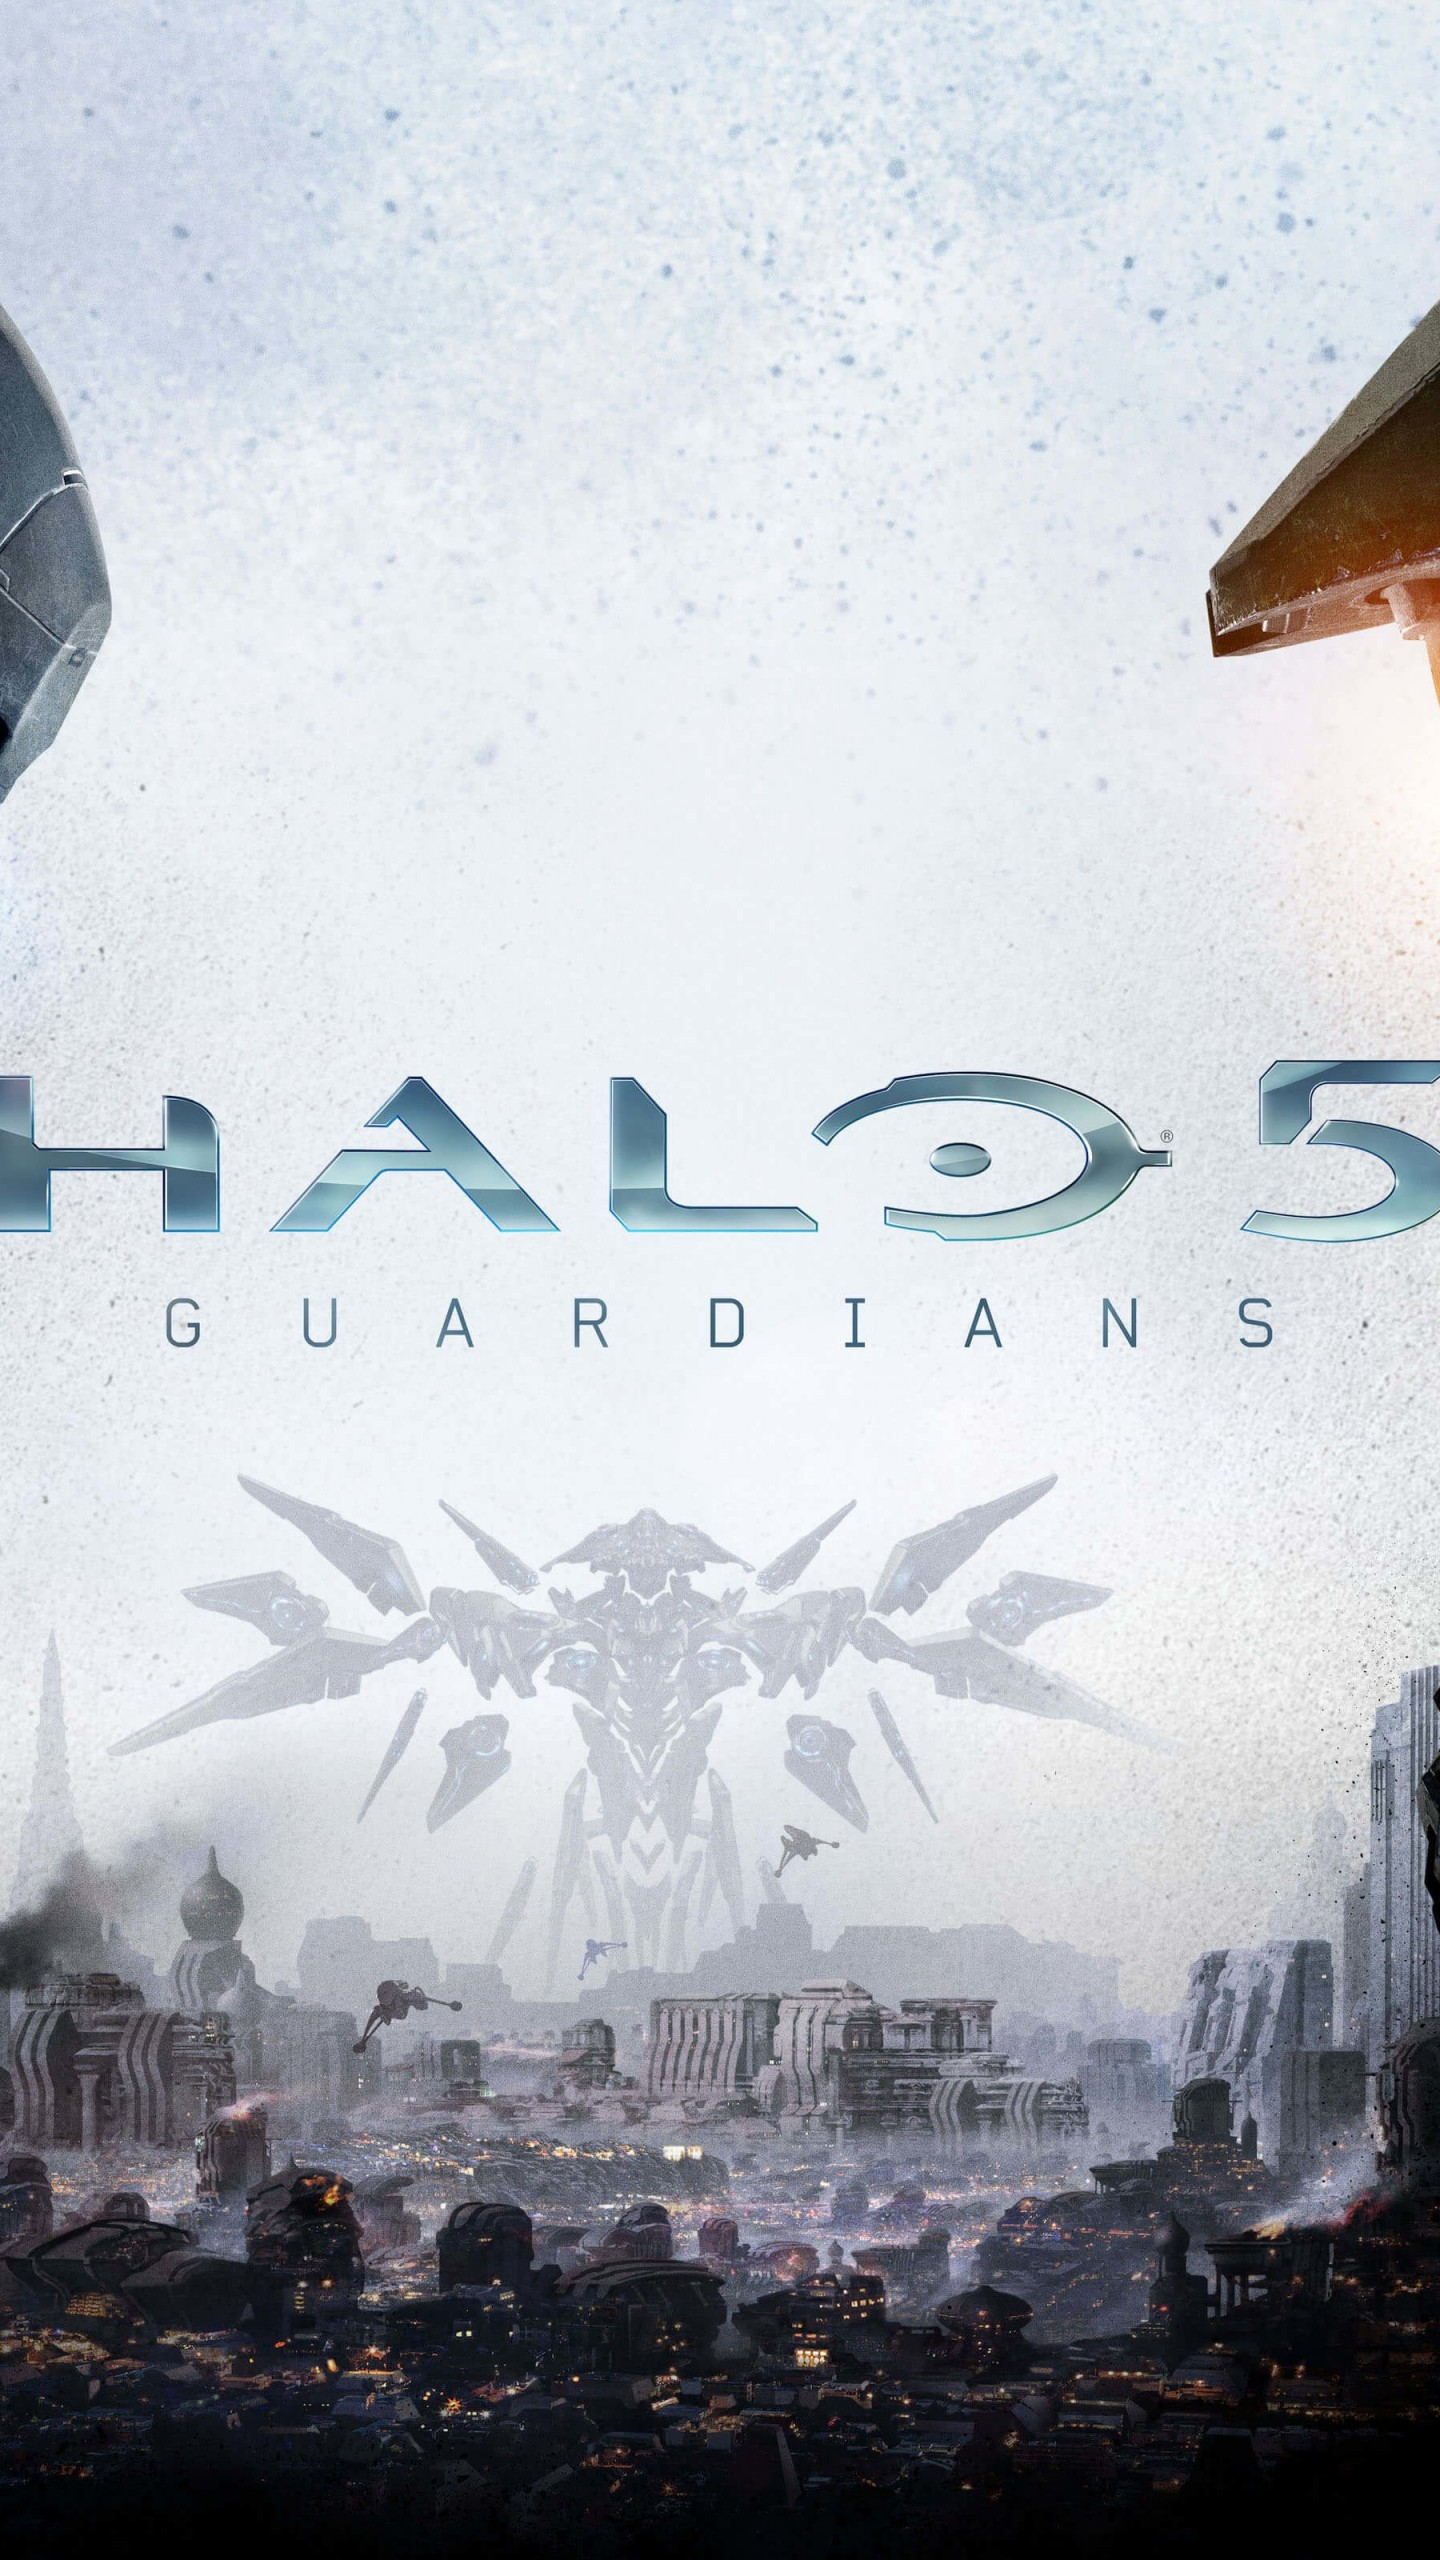 Halo 5: Guardians Wallpaper for SAMSUNG Galaxy Note 4